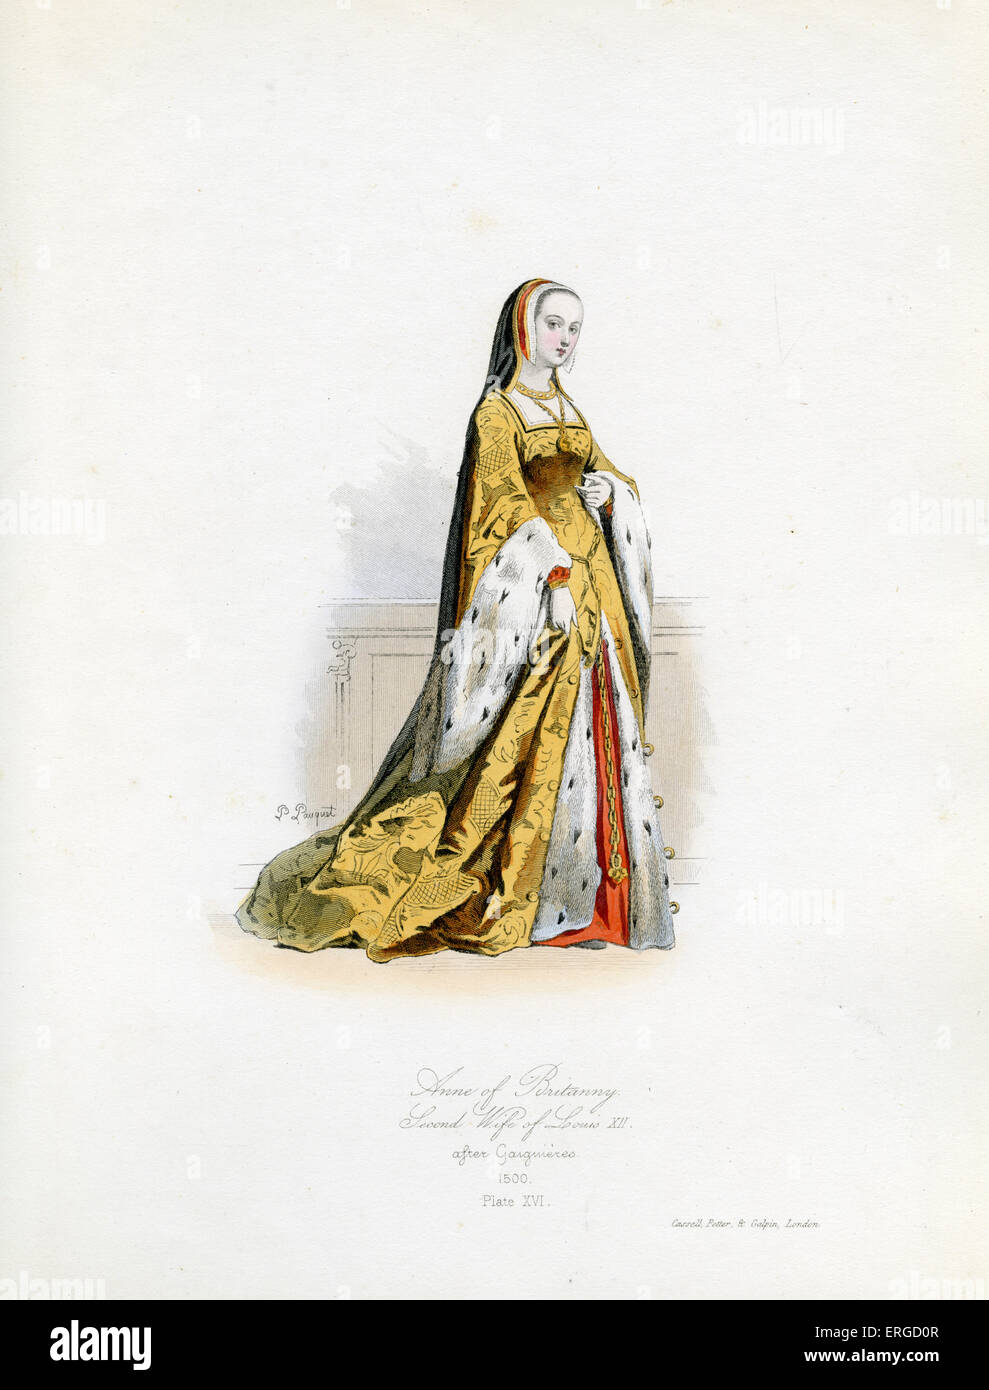 Anne of Brittany, 1500 - from engraving by Polidor Pauquet after Gaiguières. Breton ruler and married successively - Stock Image